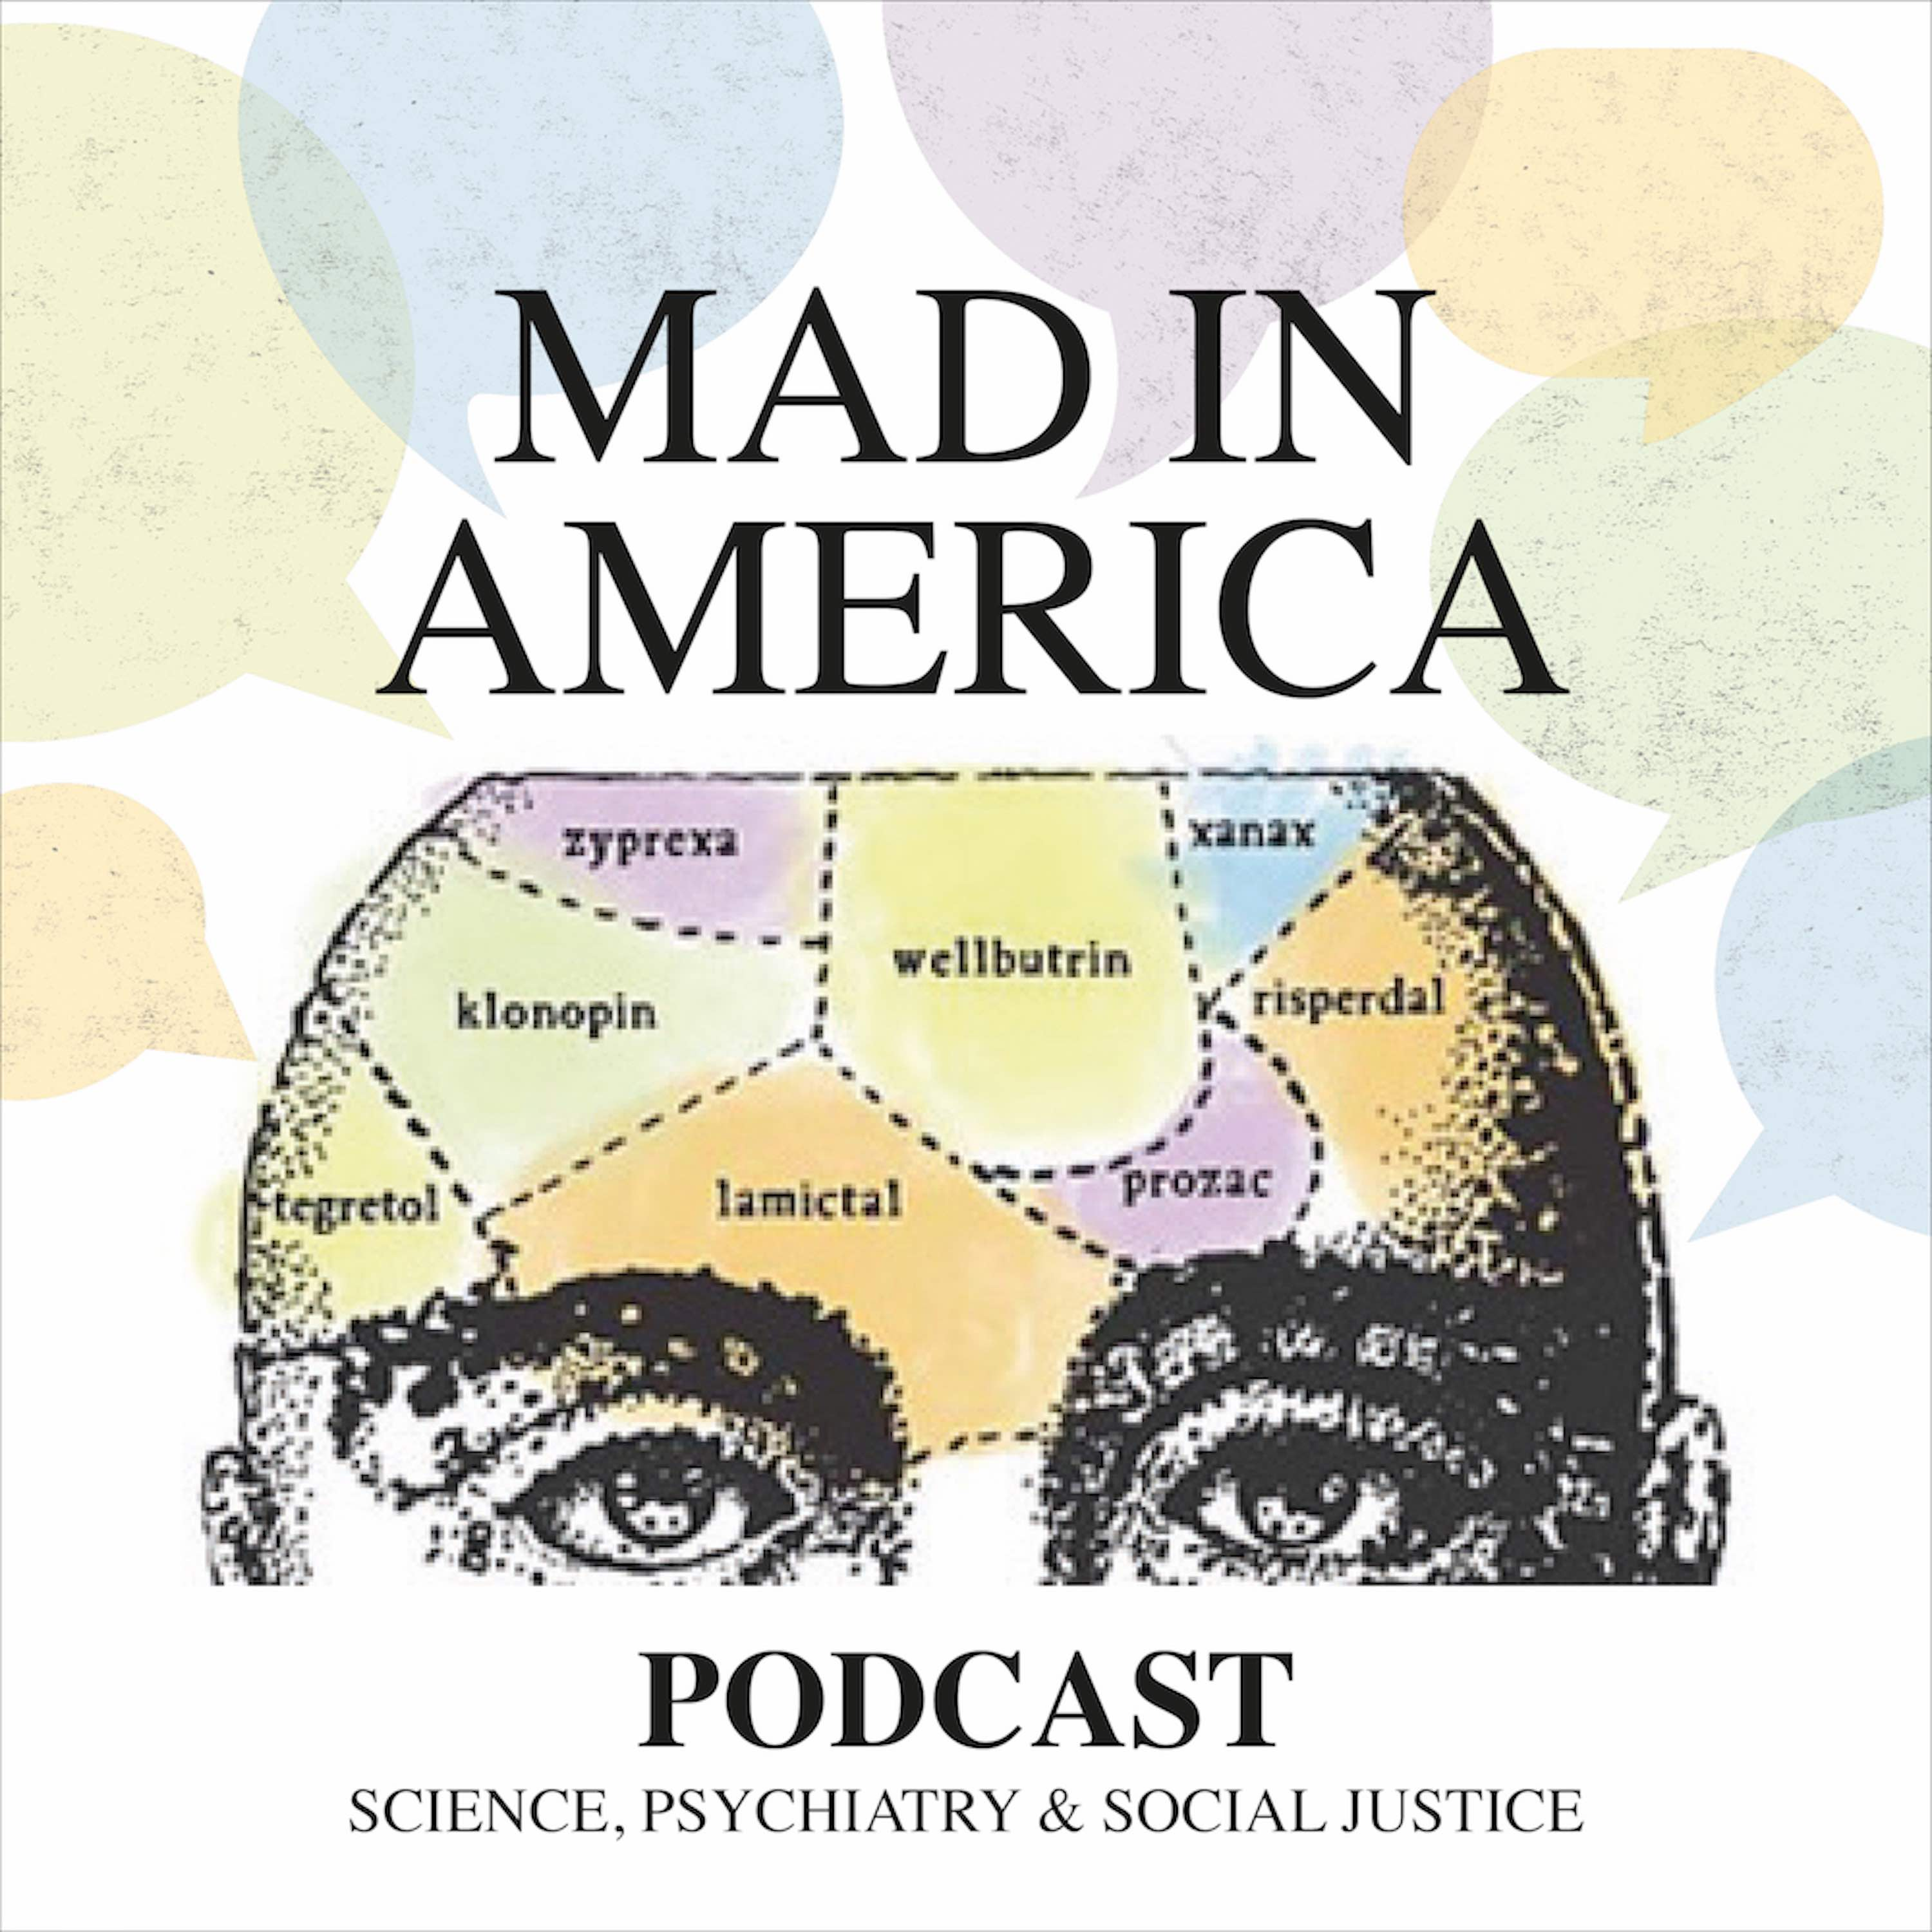 Mad in America: Rethinking Mental Health - Julia Rucklidge - Nutrition, Mental Health and TED